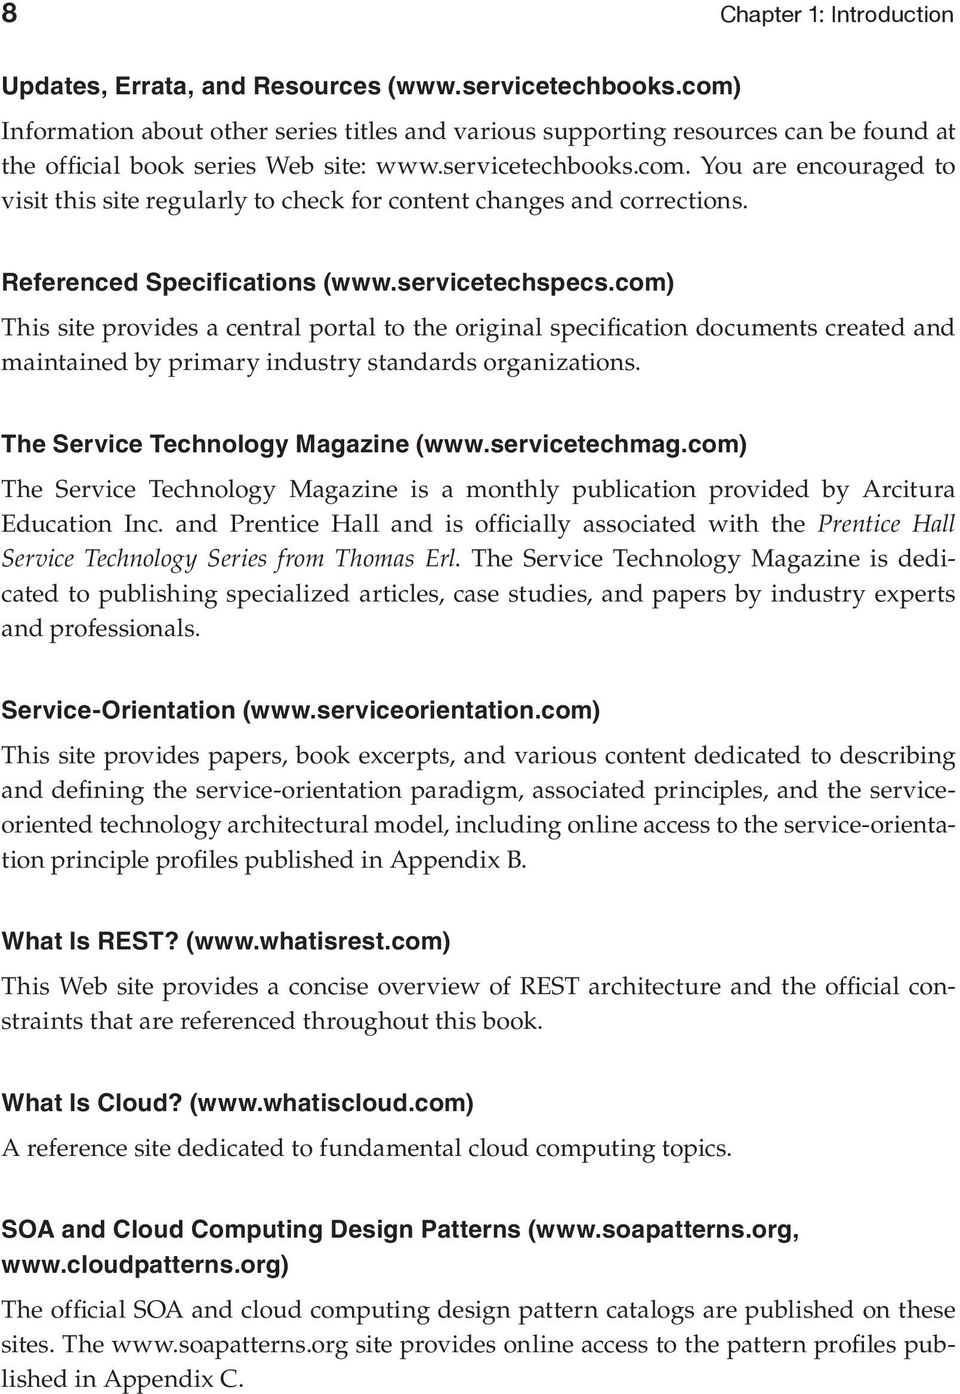 Referenced Specifications (www.servicetechspecs.com) This site provides a central portal to the original specification documents created and maintained by primary industry standards organizations.